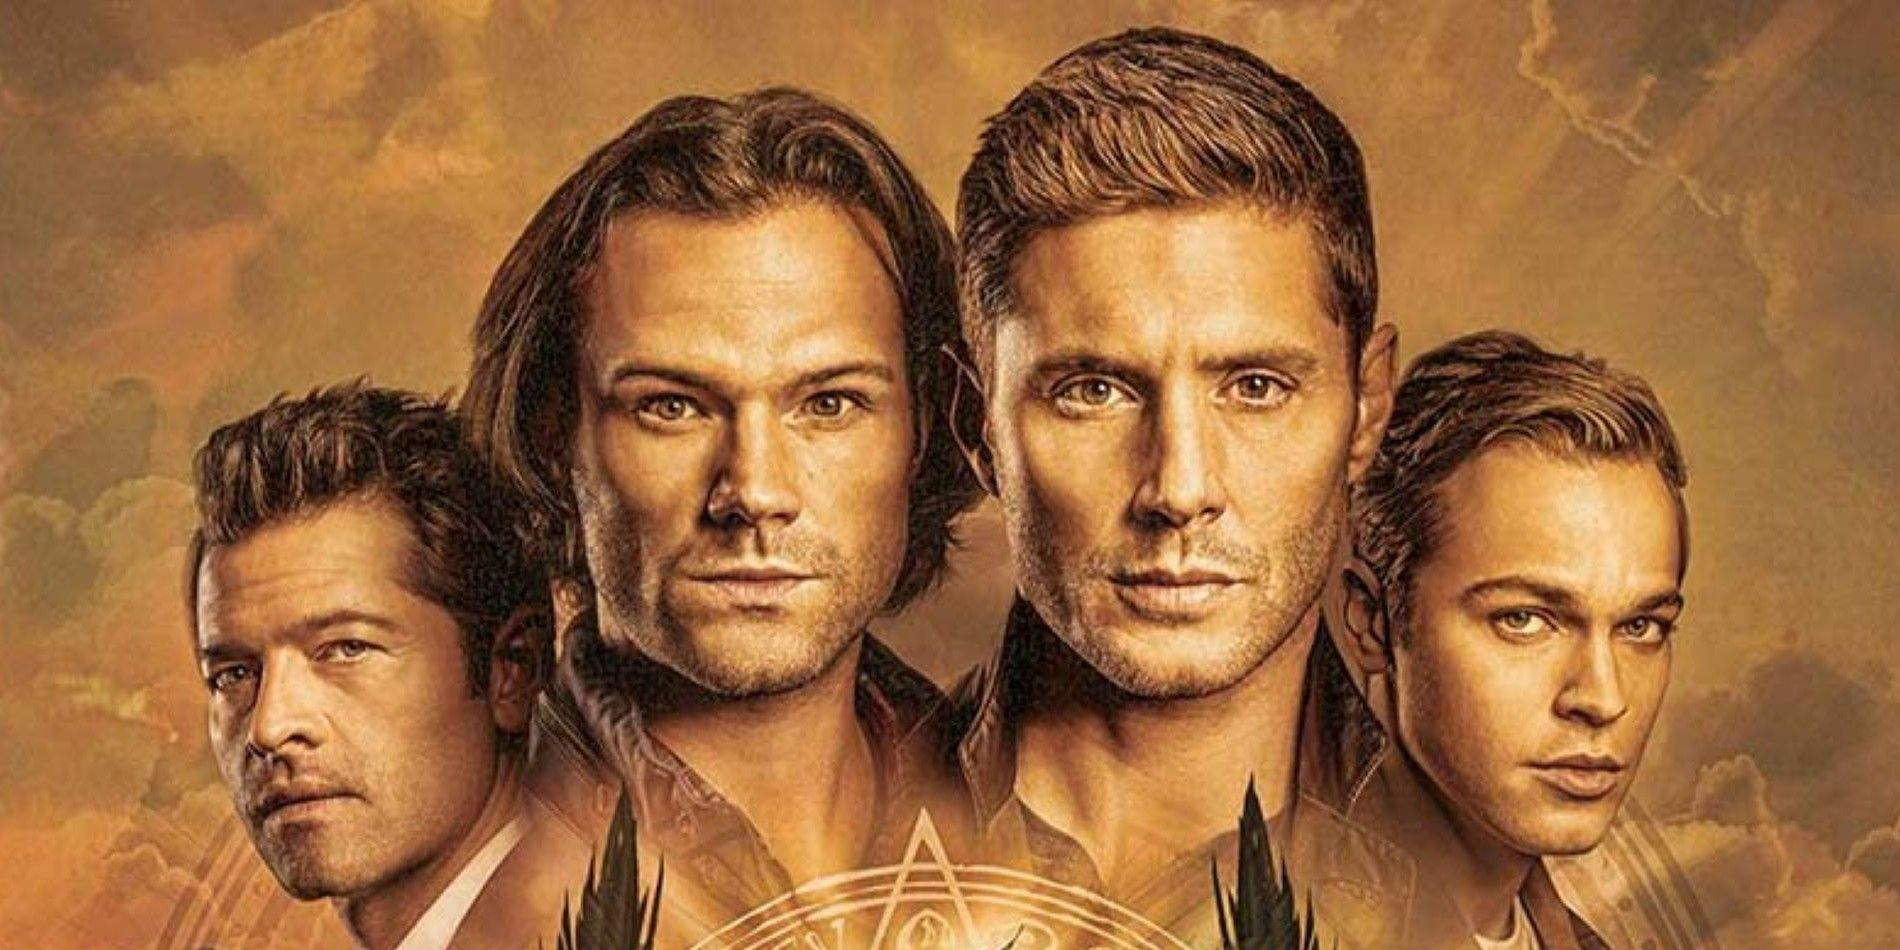 Supernatural Season 15 Cast & Character Guide | Screen Rant